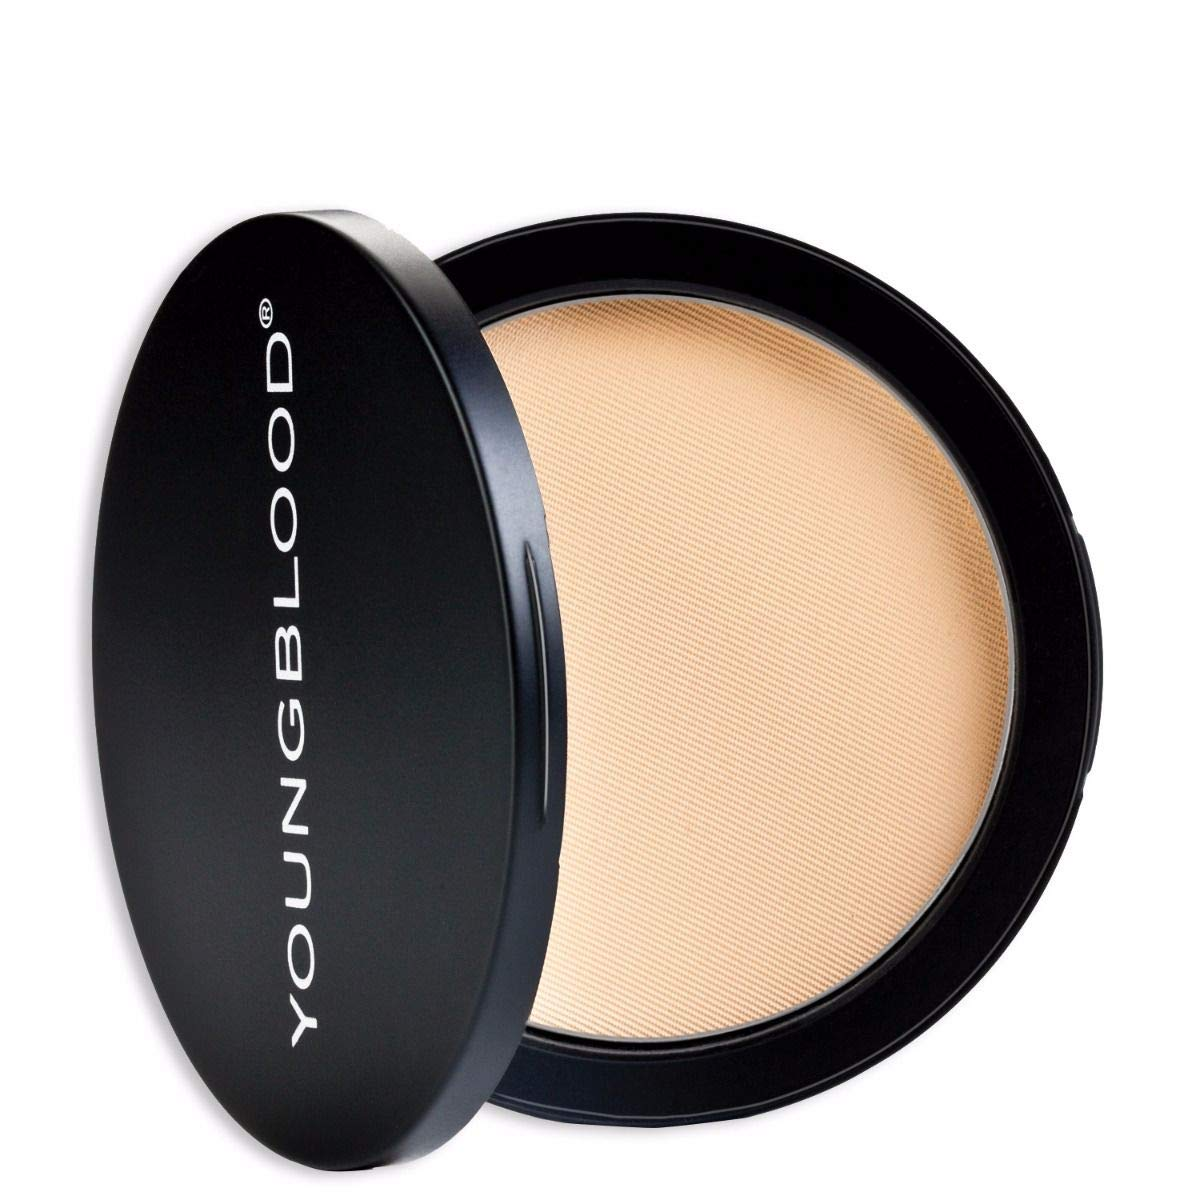 Youngblood Mineral Cosmetics Natural Pressed Mineral Rice Powder - Dark - 8 g / 0.28 oz